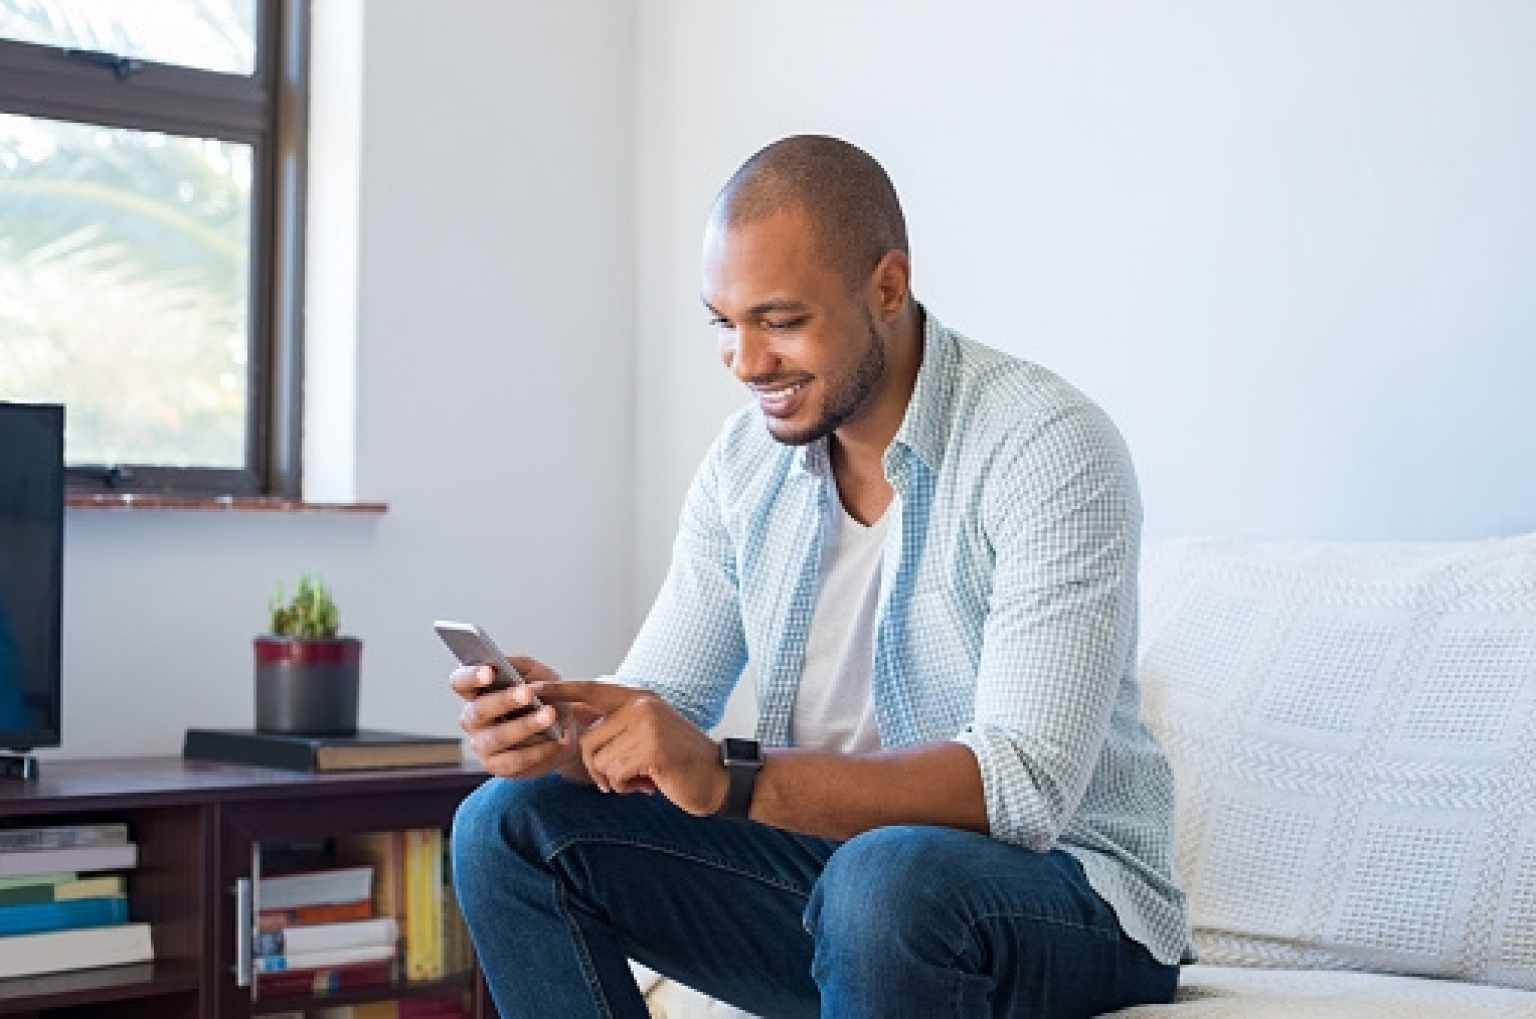 Man Smiling While Looking at Phone